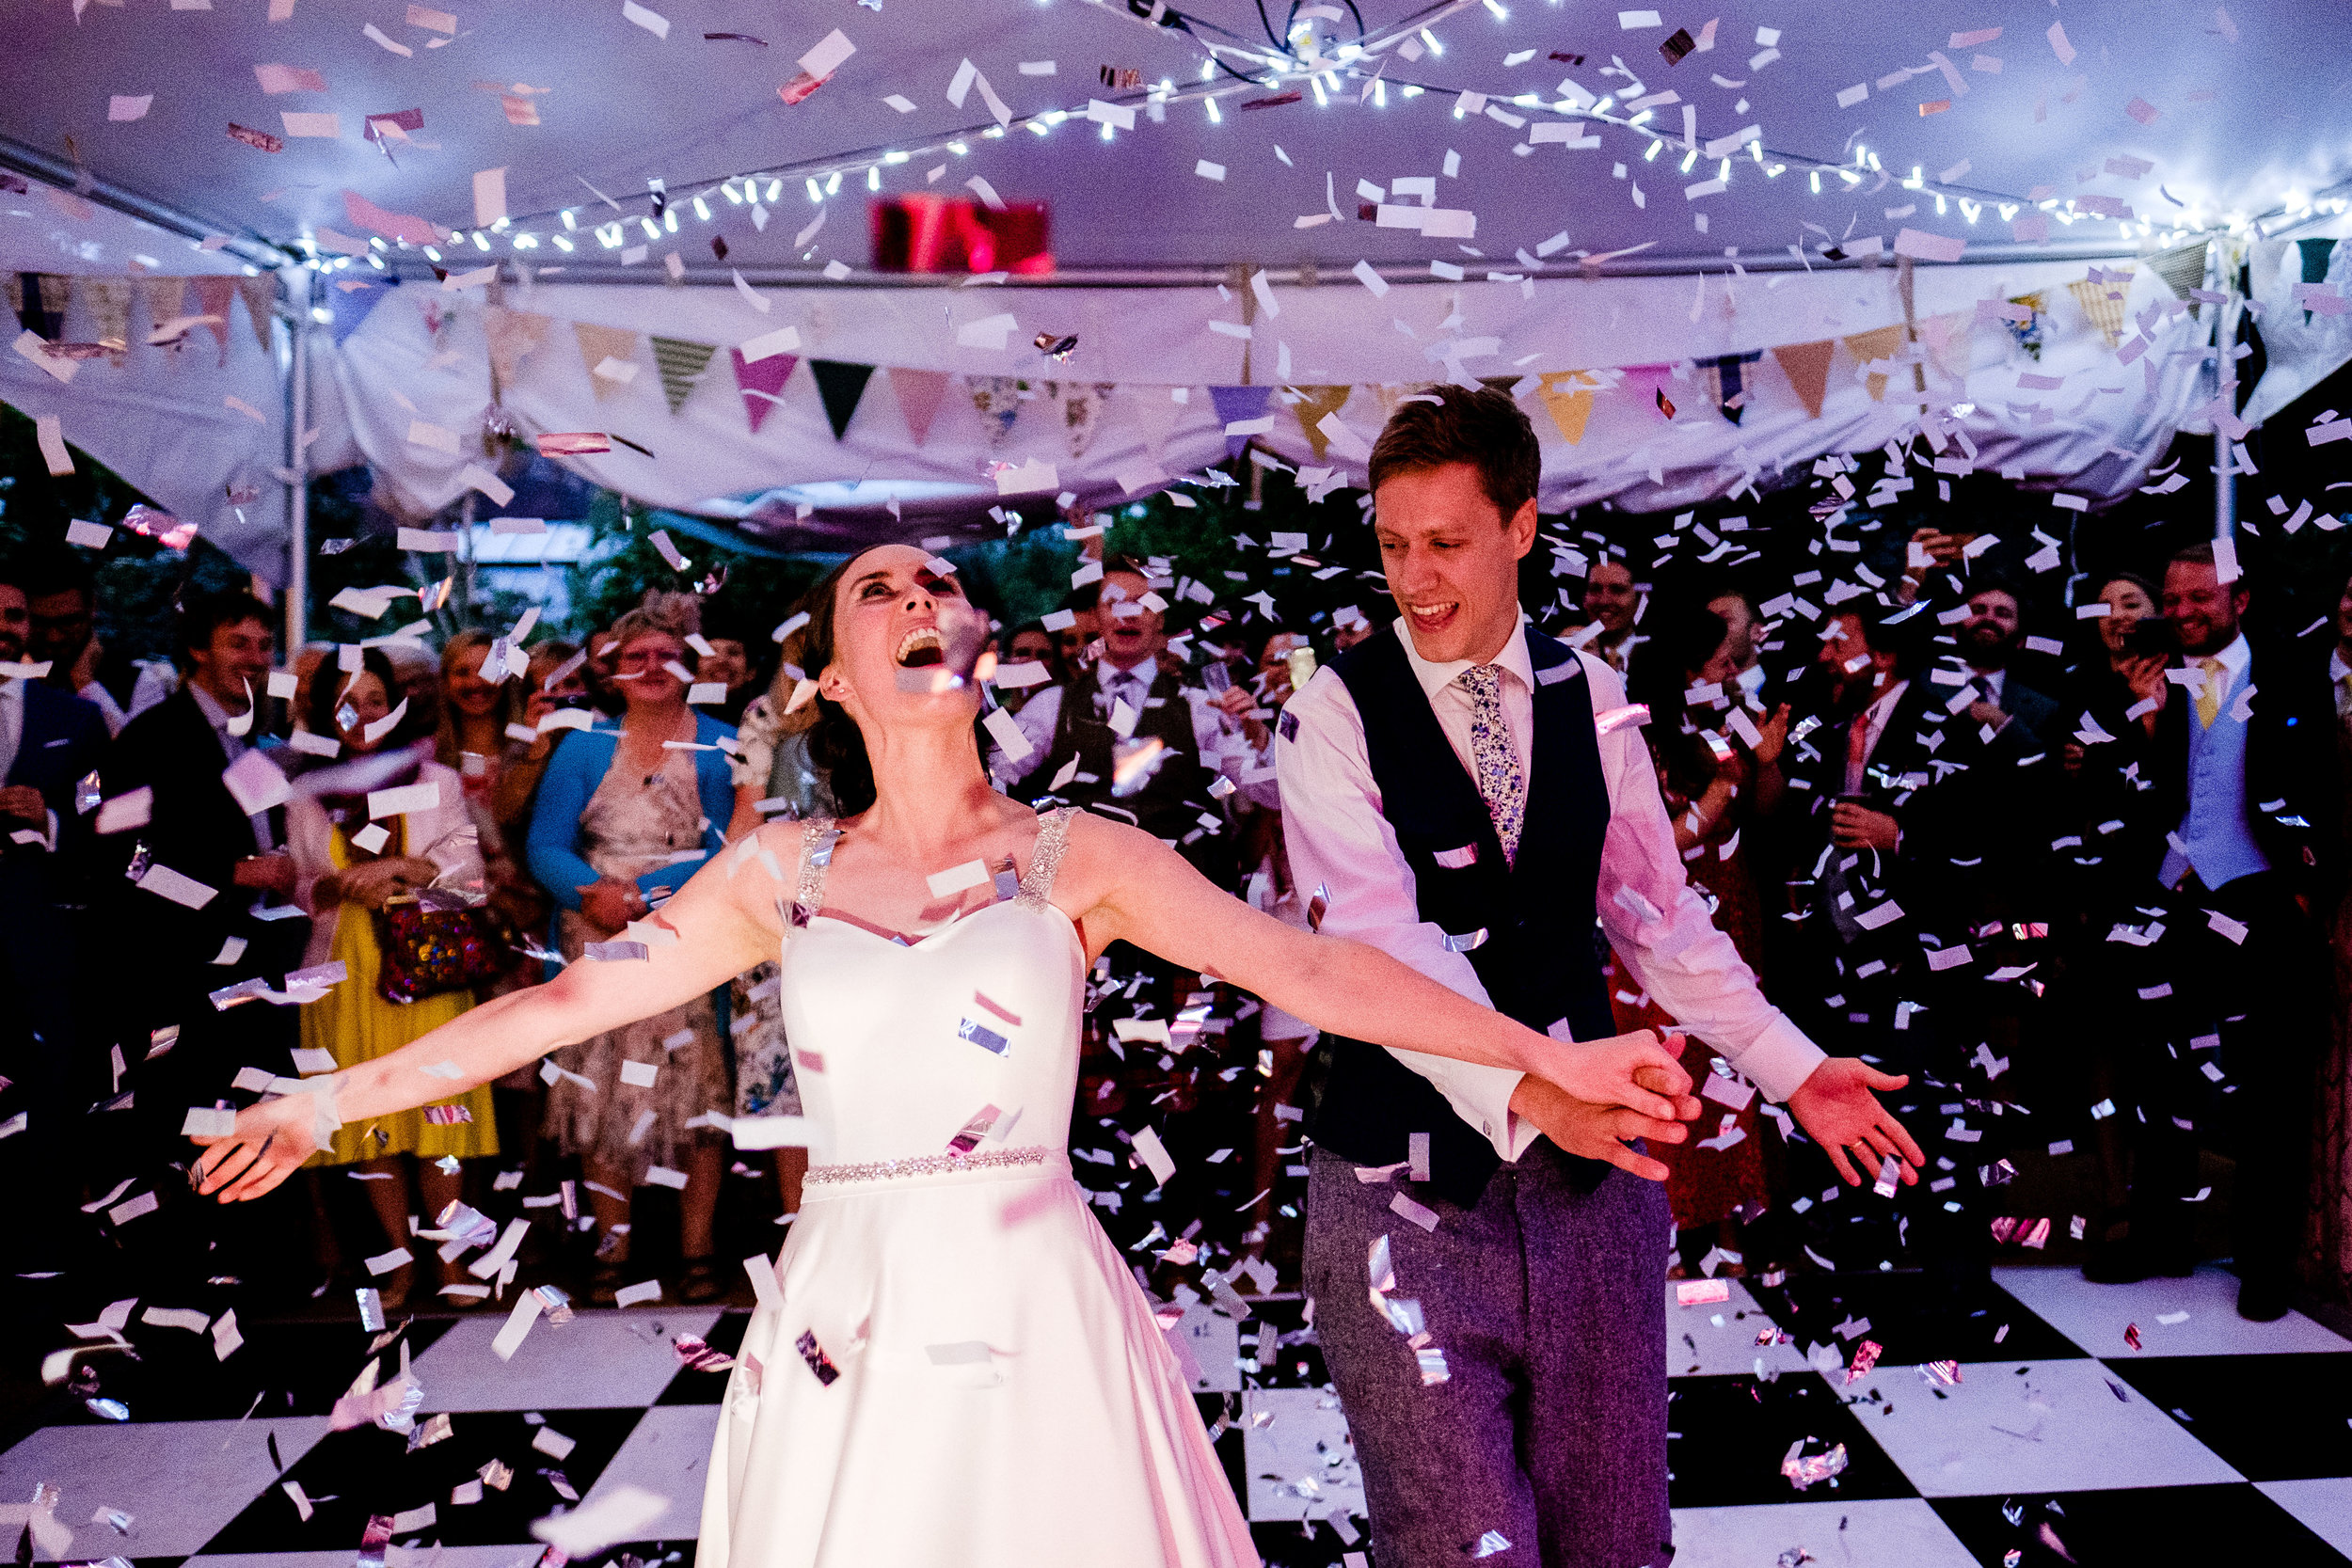 confetti cannons after the first dance